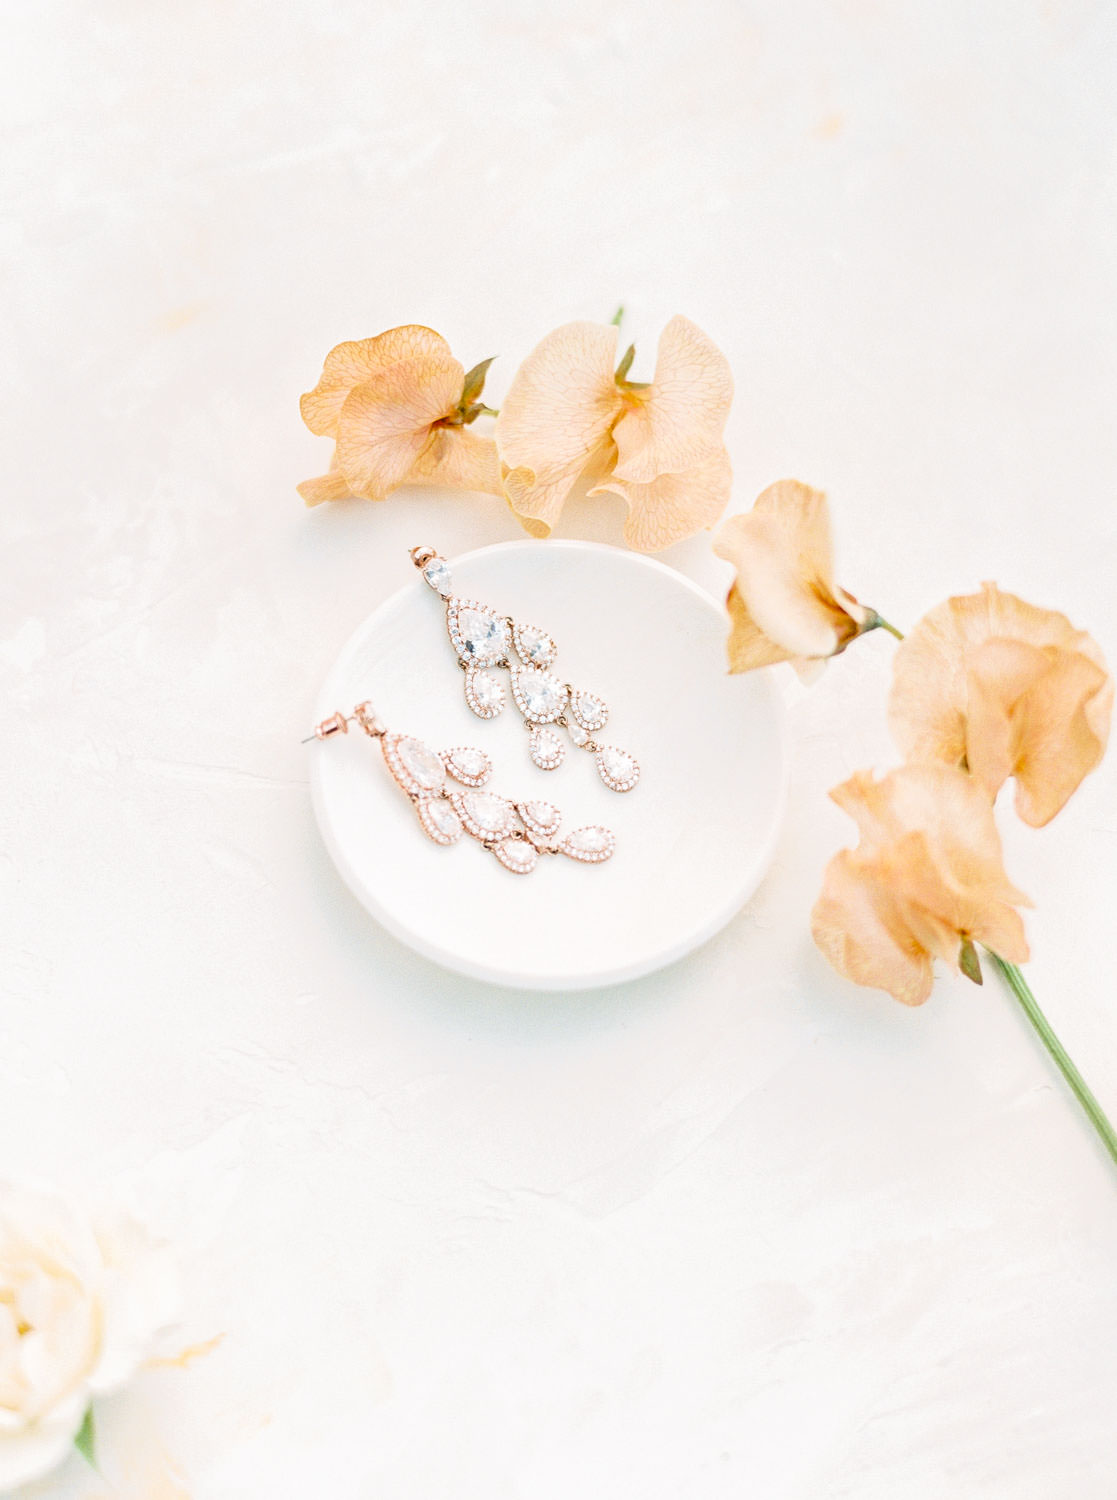 Diamond dangling earrings in a ring dish with peach sweet pea flowers, Cavin Elizabeth Photography